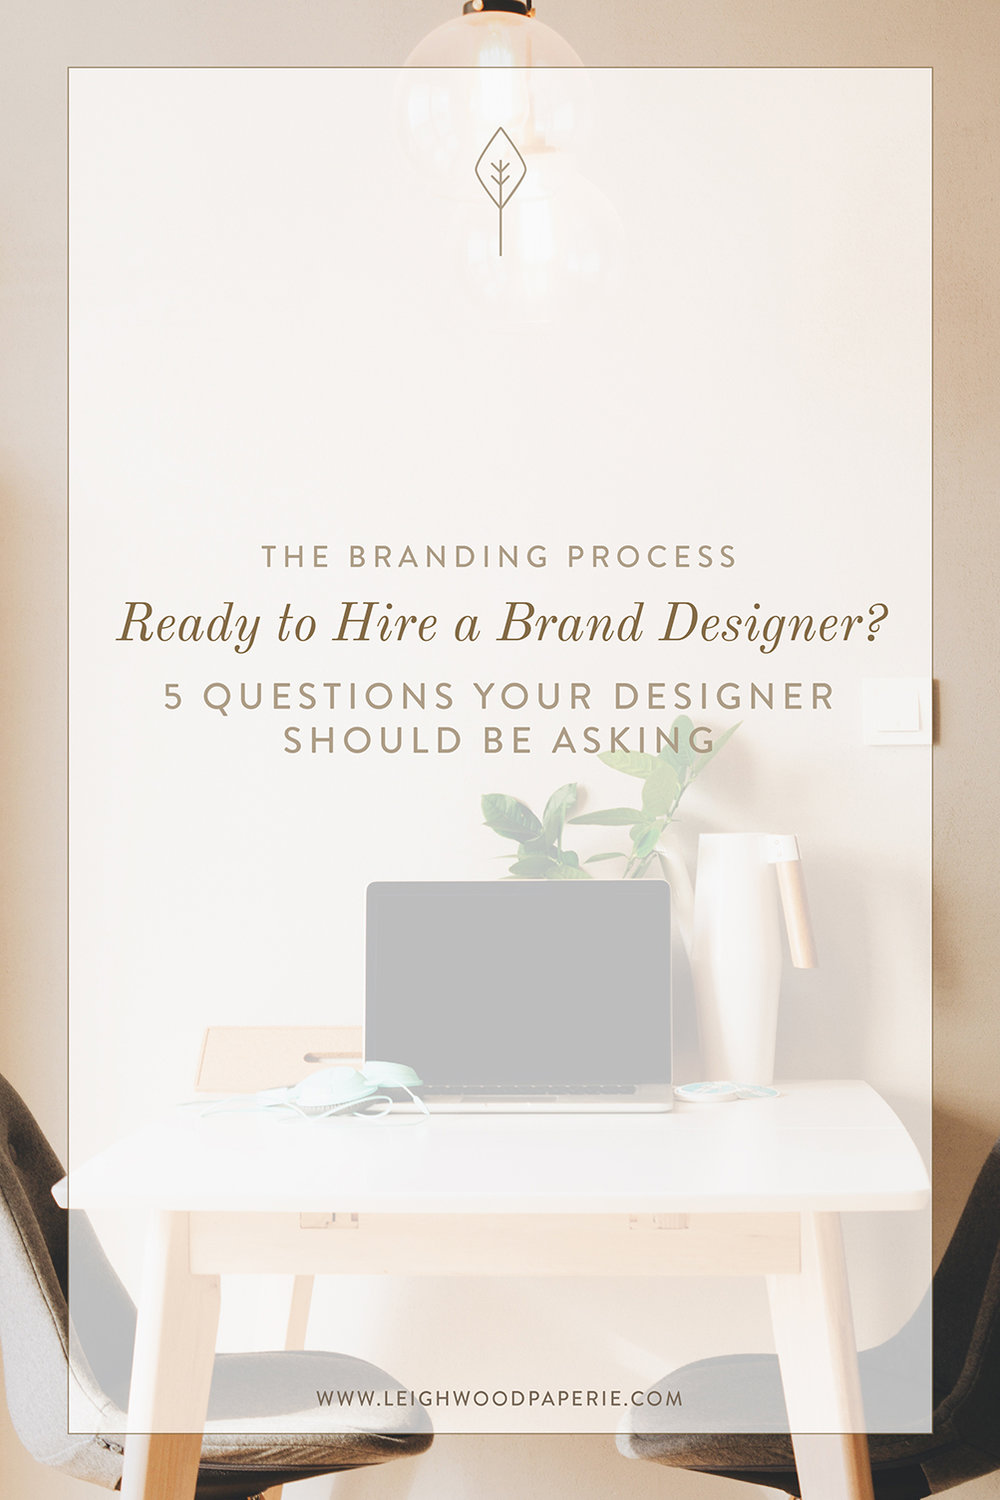 Leighwood Paperie >> The Branding Process: Ready to Hire a Brand Designer? 5 Questions Your Designer Should be Asking